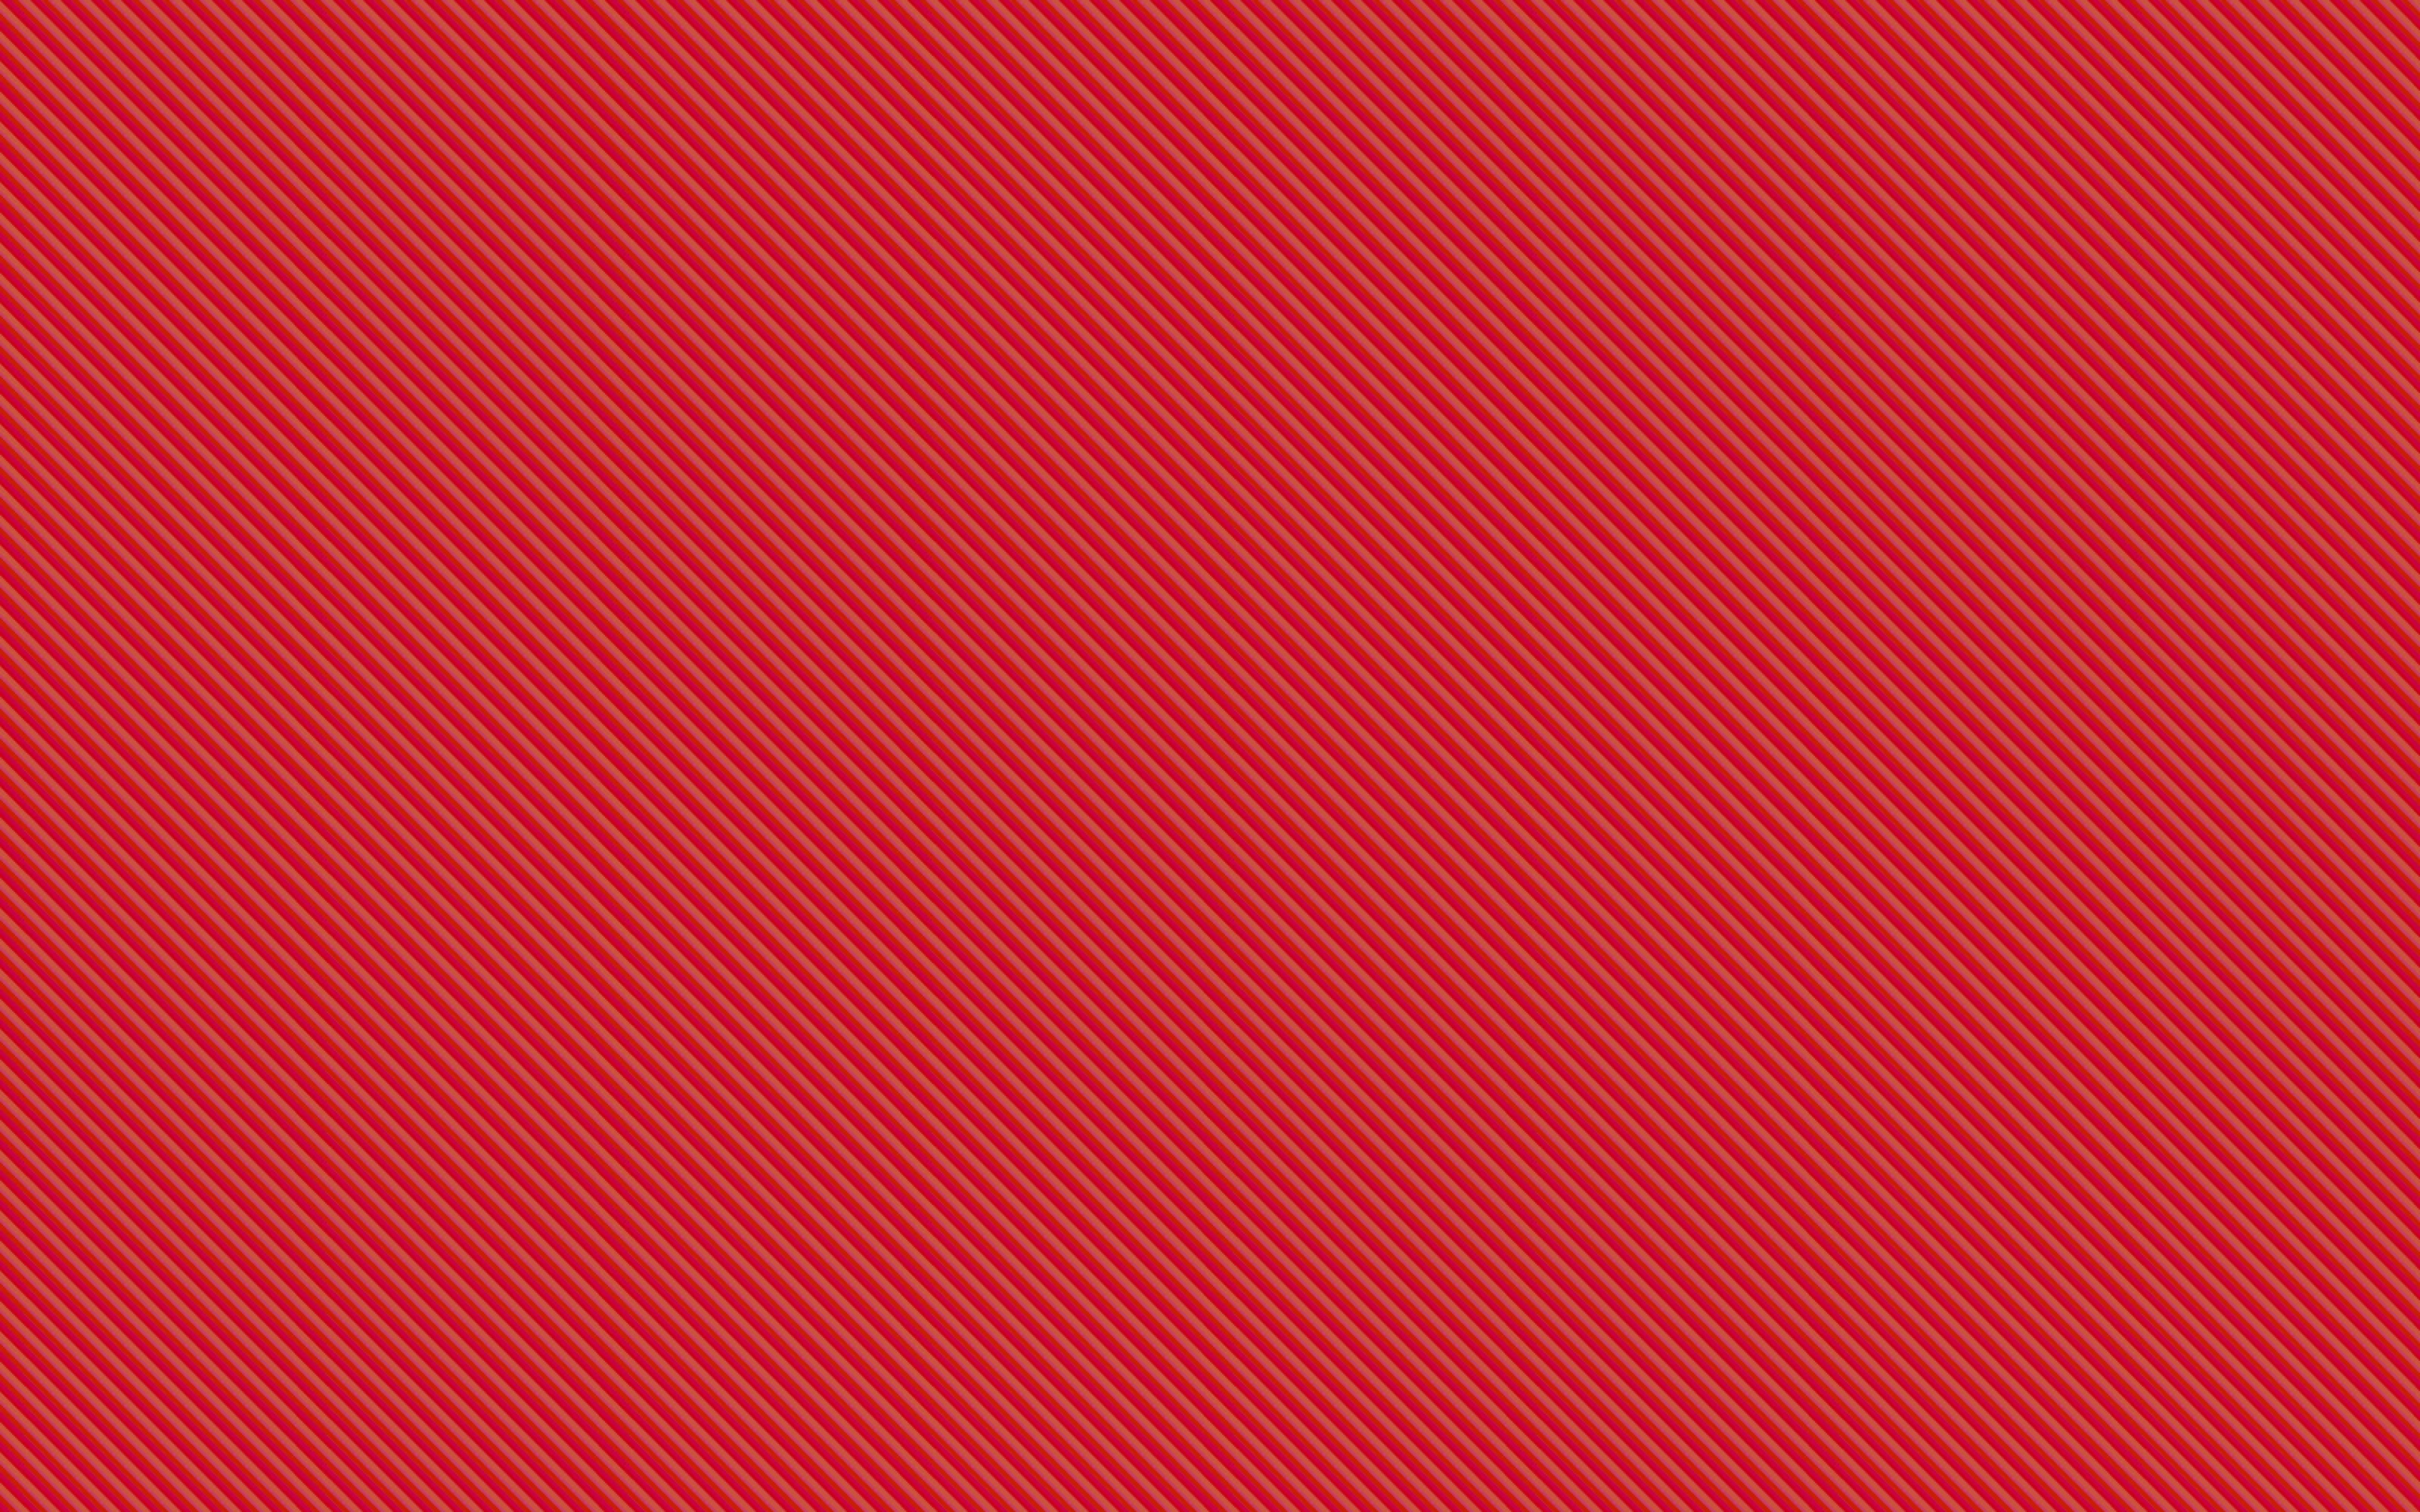 Wallpaper 3840x2400 red lines background texture Ultra HD 4K 3840x2400